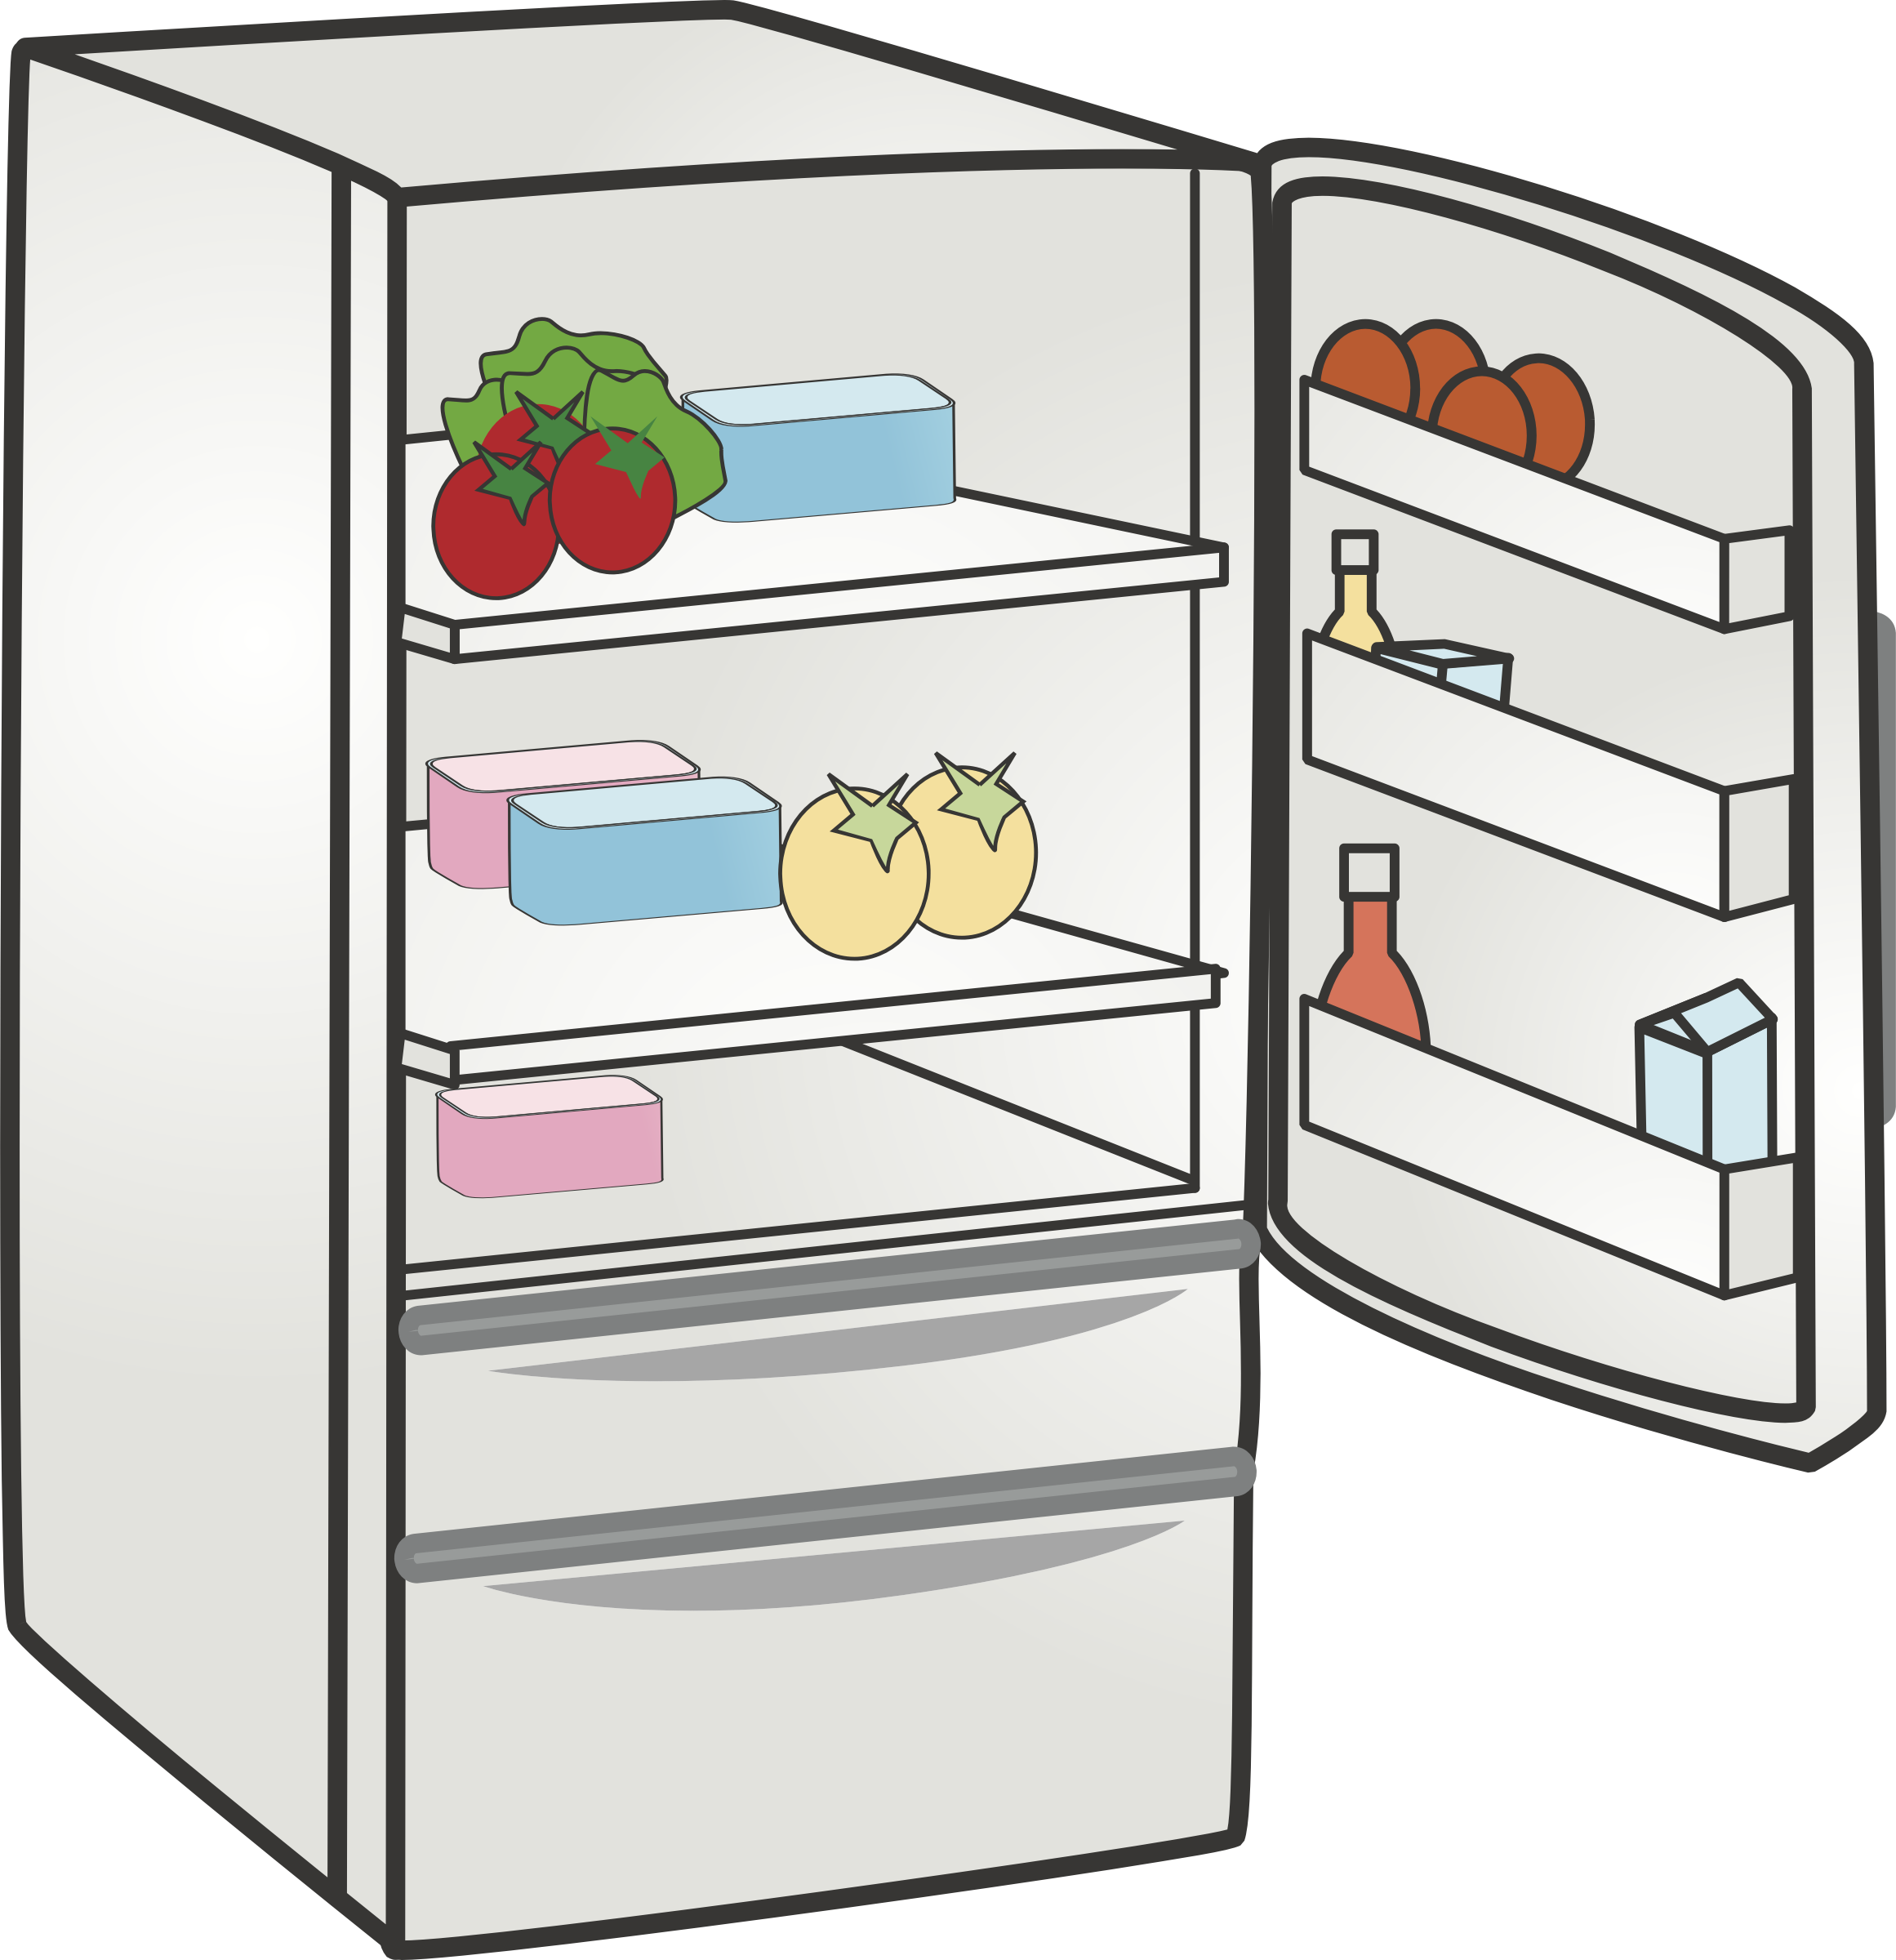 Clipart kitchen kitchen appliance. Refrigerator home clip art